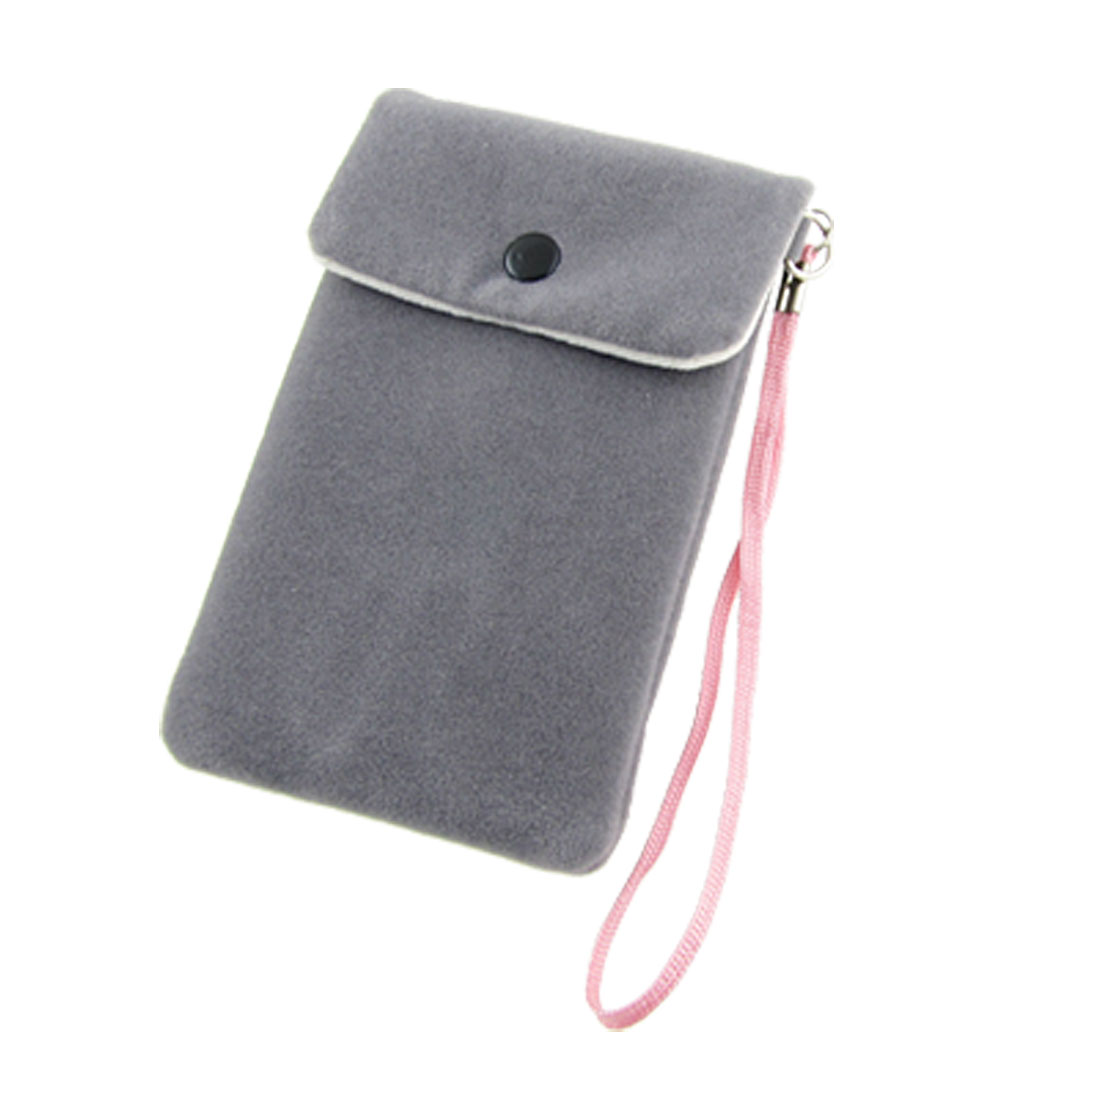 Soft Flannel Flap Pouch Gray Bag for iPhone 4 4G